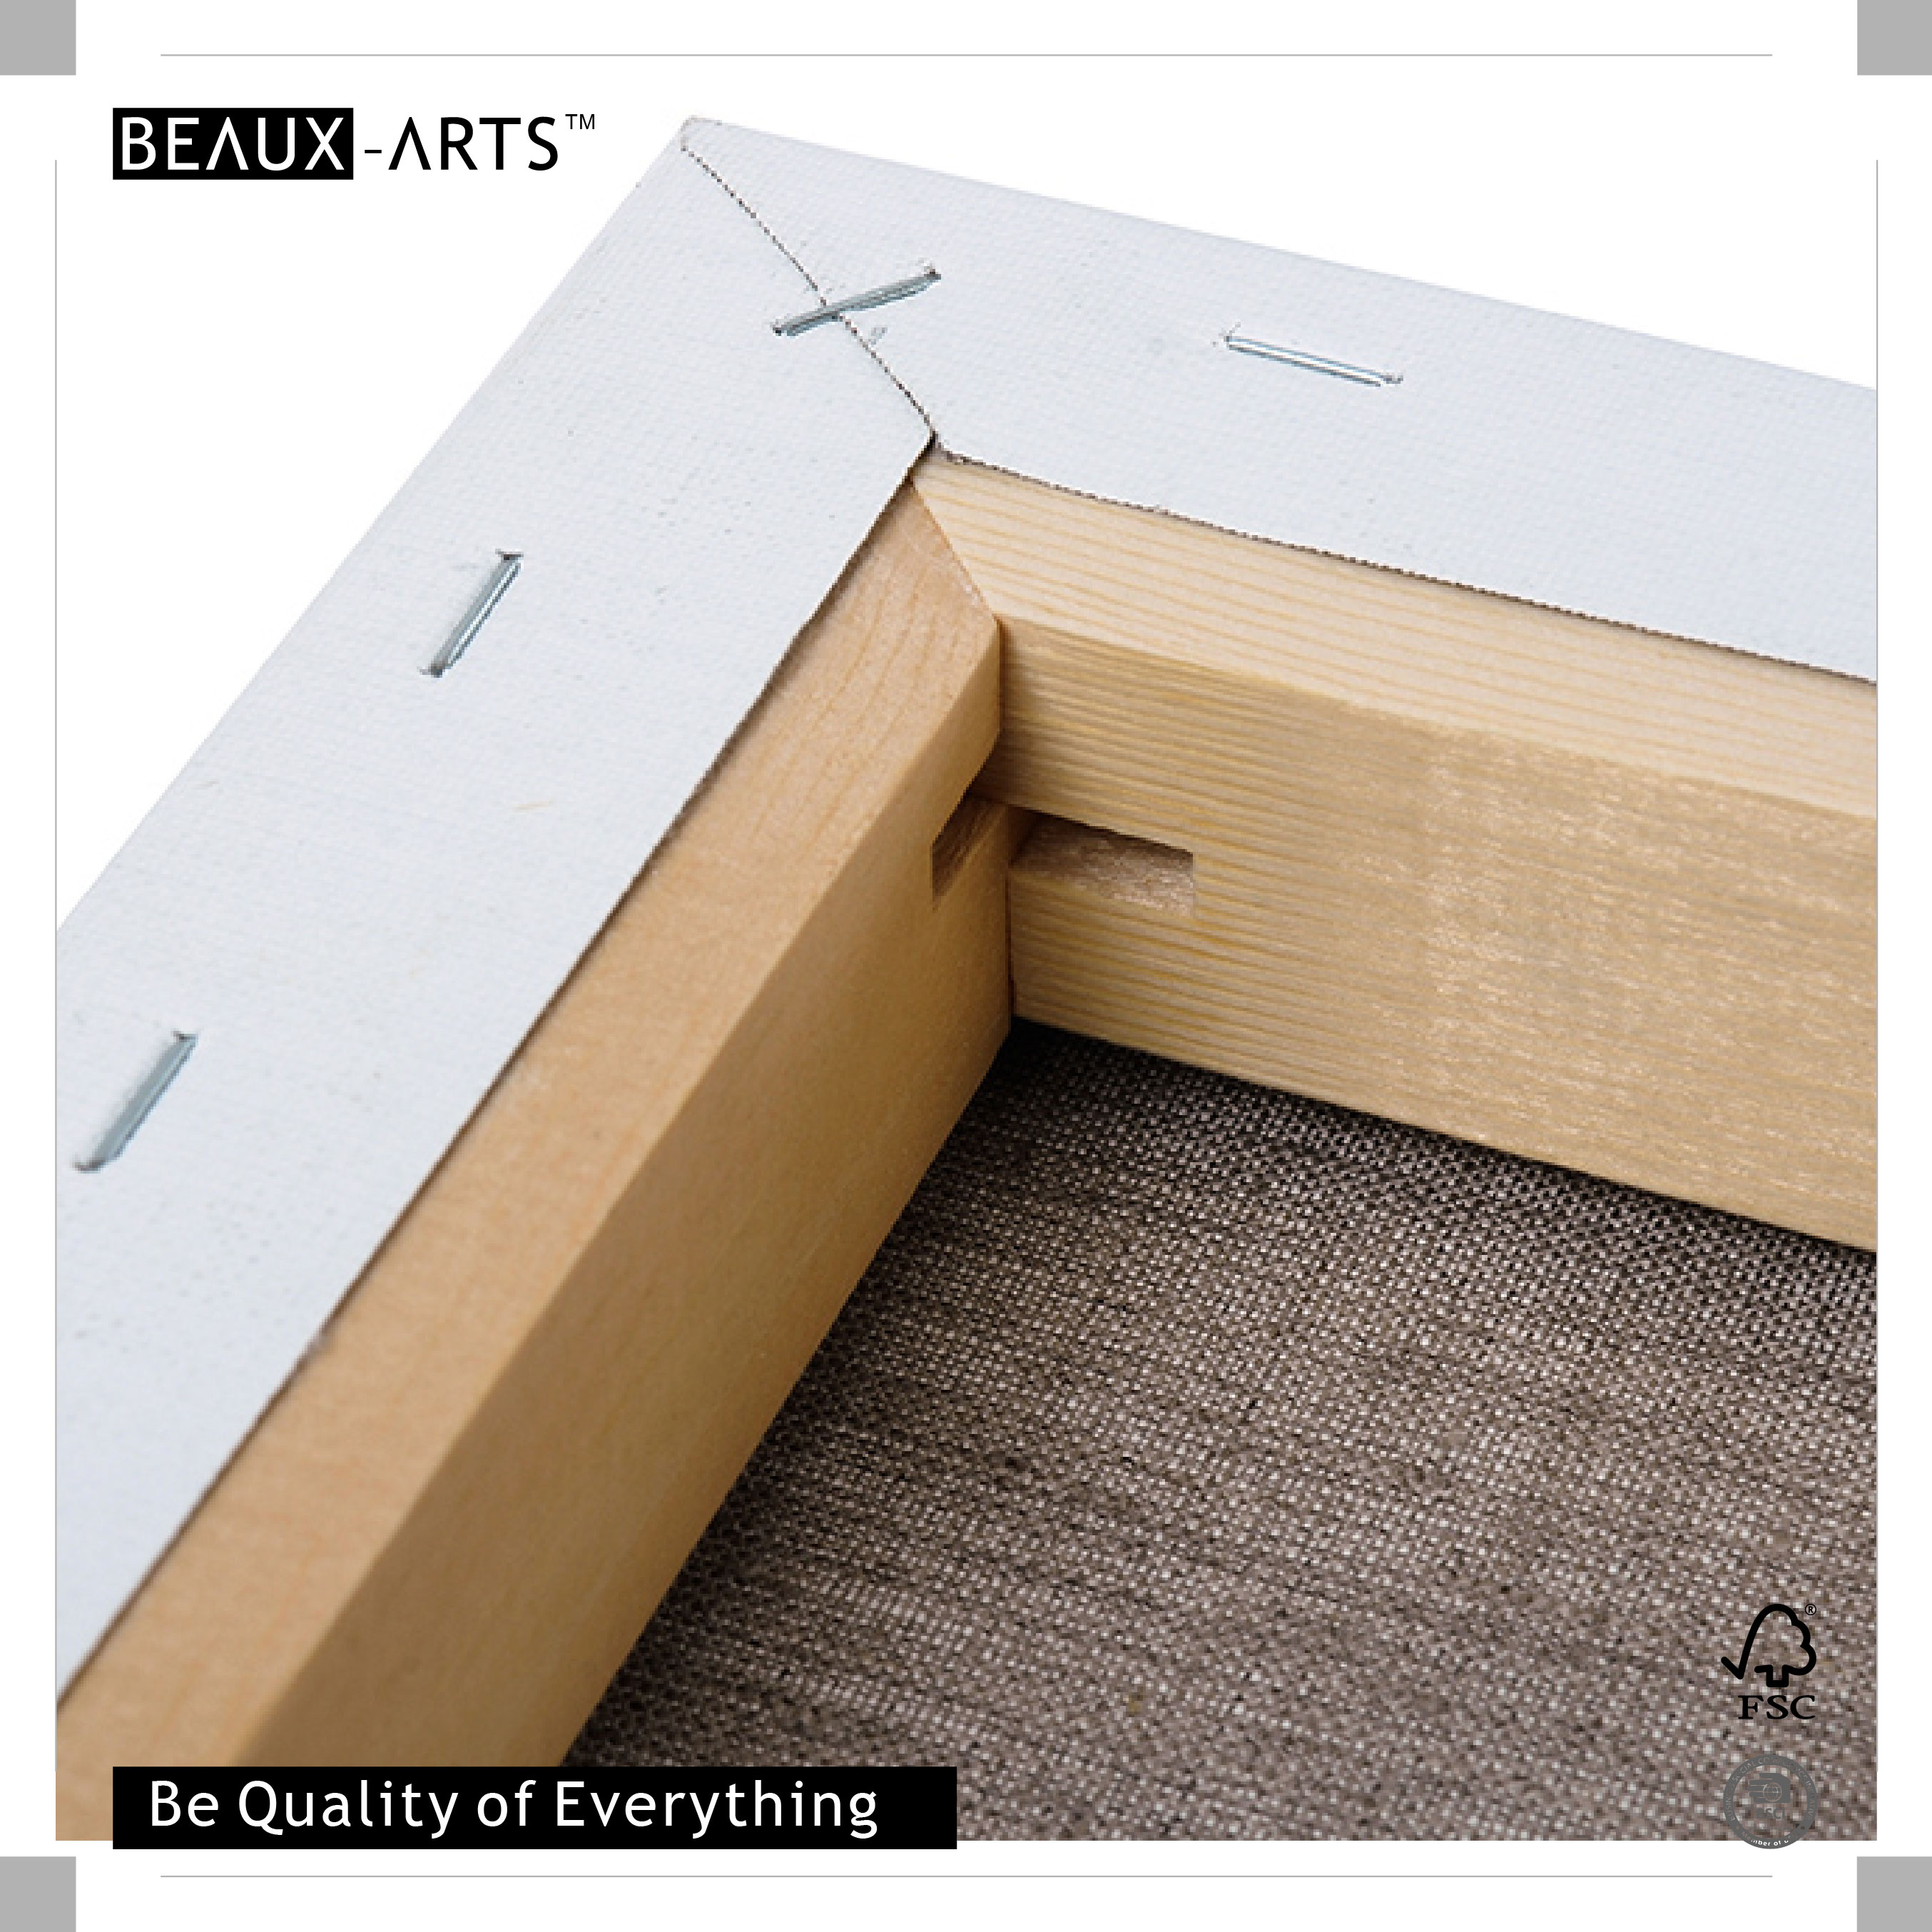 500g Deluxe Linen Framed Blank Stretched Canvas Art Supplies with ...